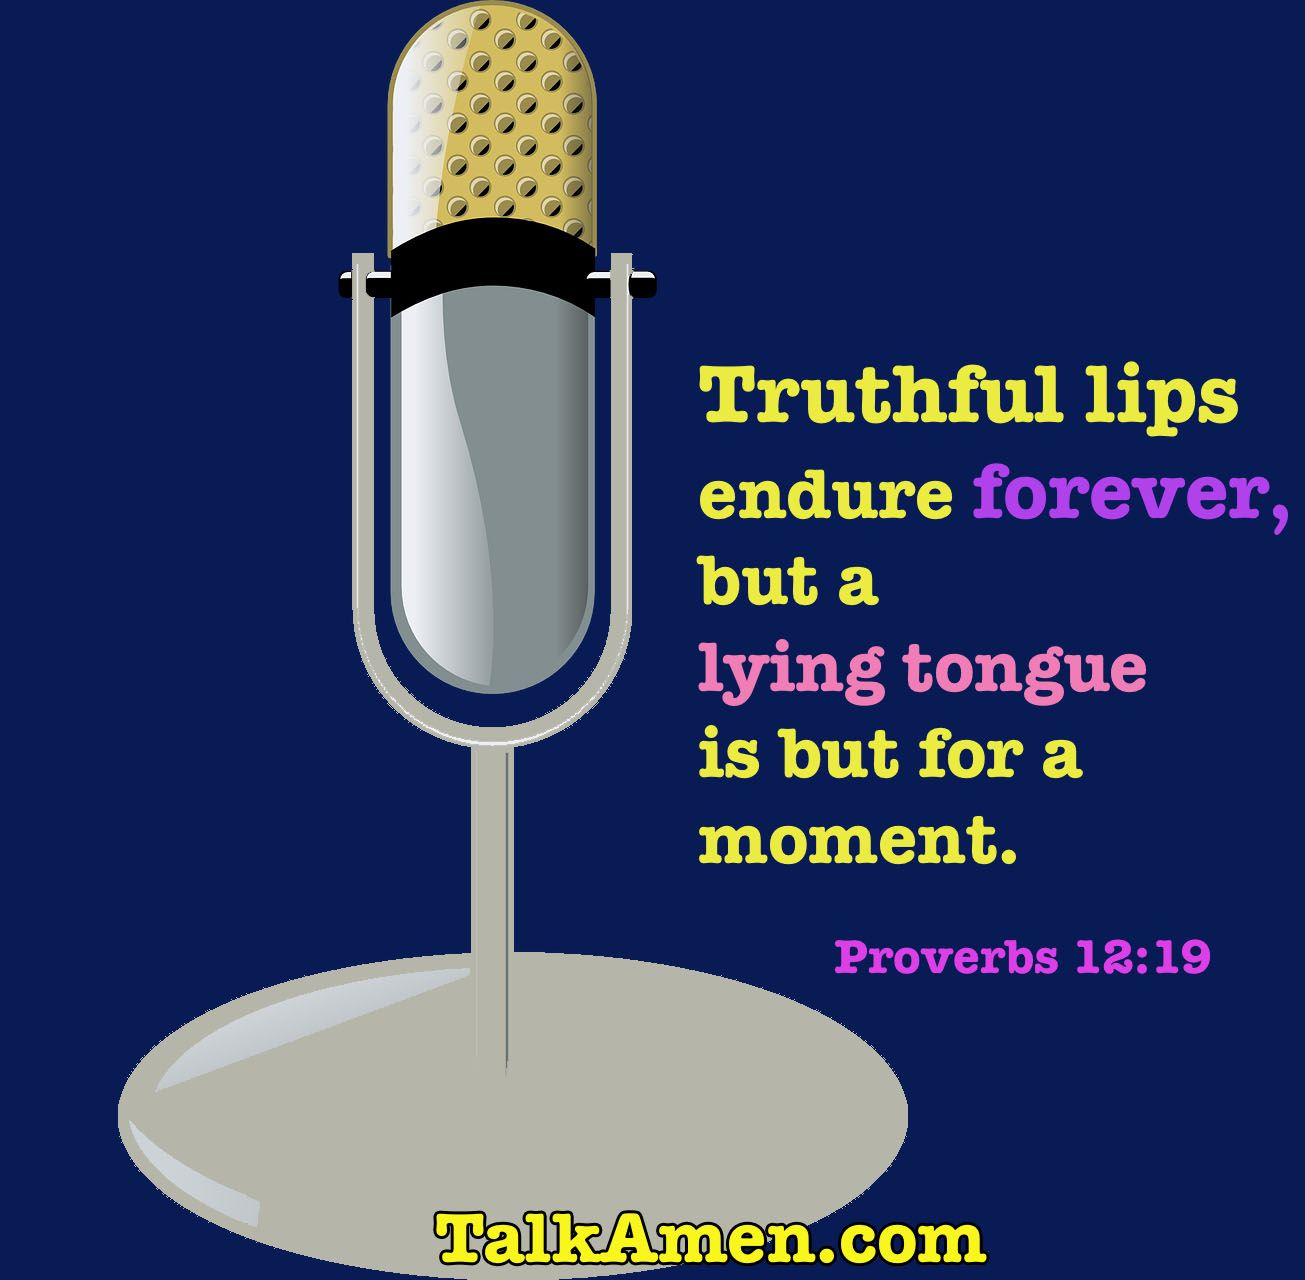 Truthful lips endure forever, but lying tongue is momentary